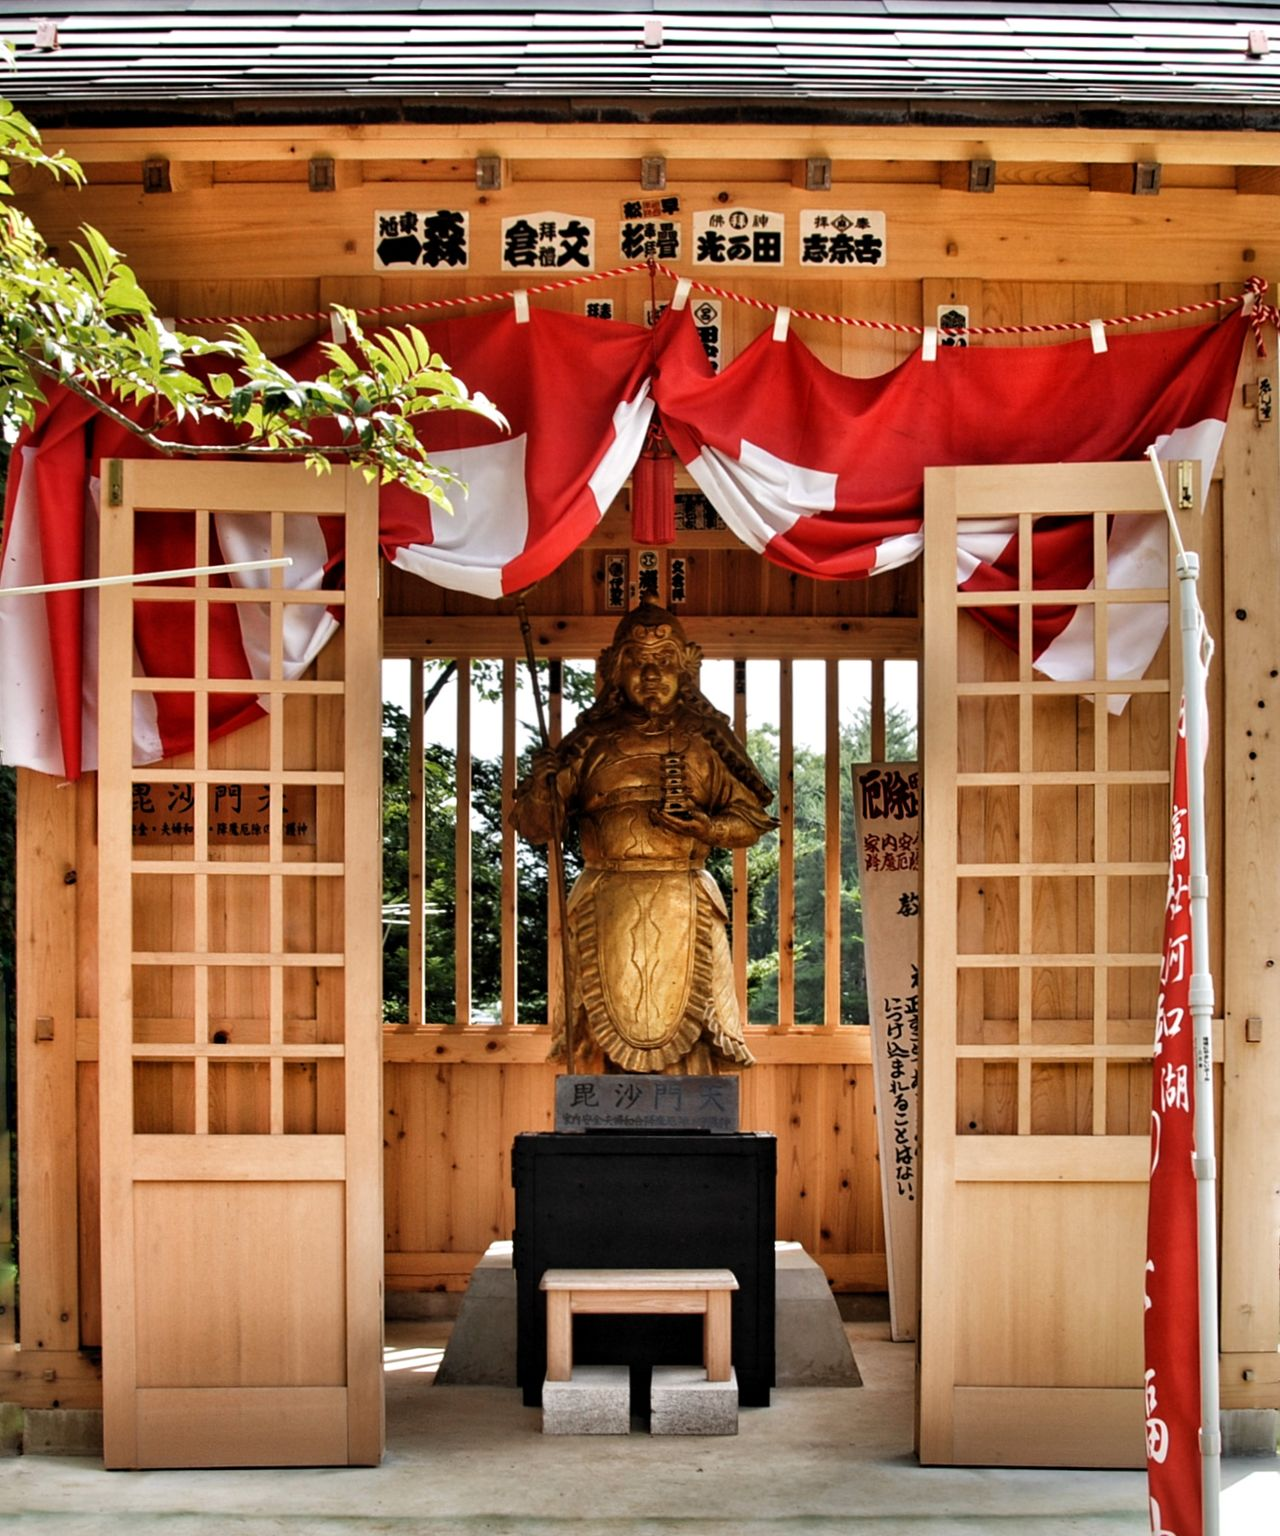 07.2008 Kawaguchiko Yamanashi Japan Street Photography Bishamonten Shrine Bishamon Statue Built Structure Buddhism Outdoors Throwback Japanese Culture Japan Life